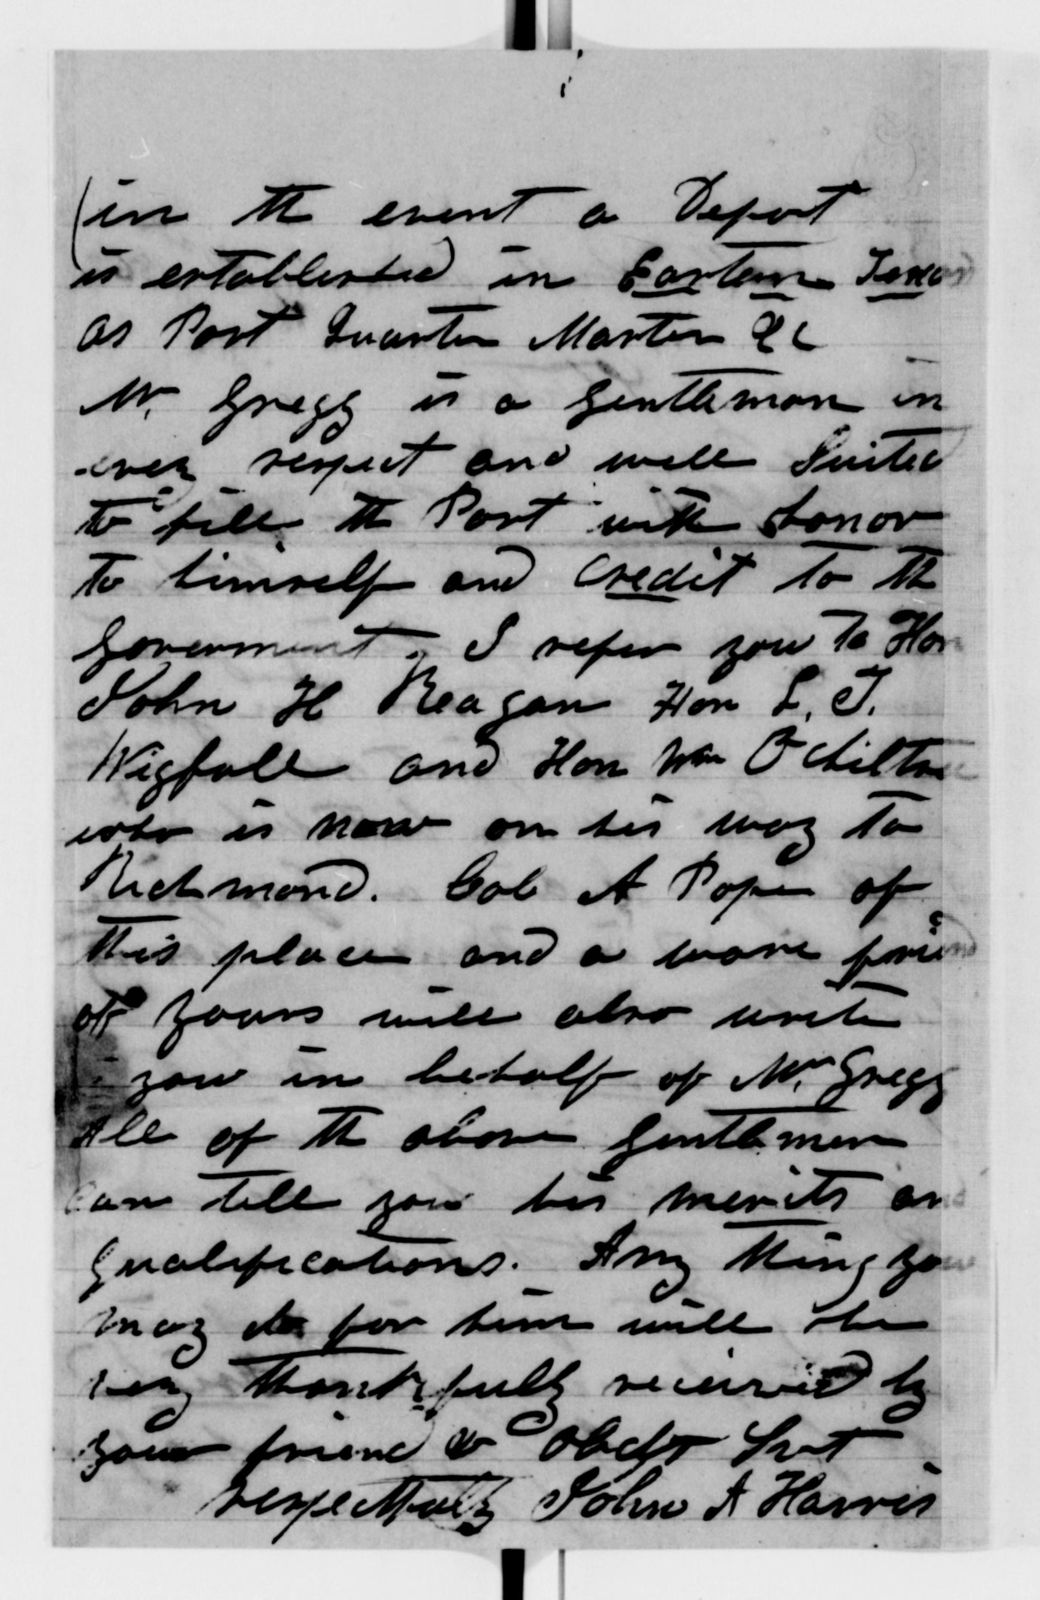 Alexander Hamilton Stephens Papers: General Correspondence, 1784-1886; 1862, Apr. 30-June 18